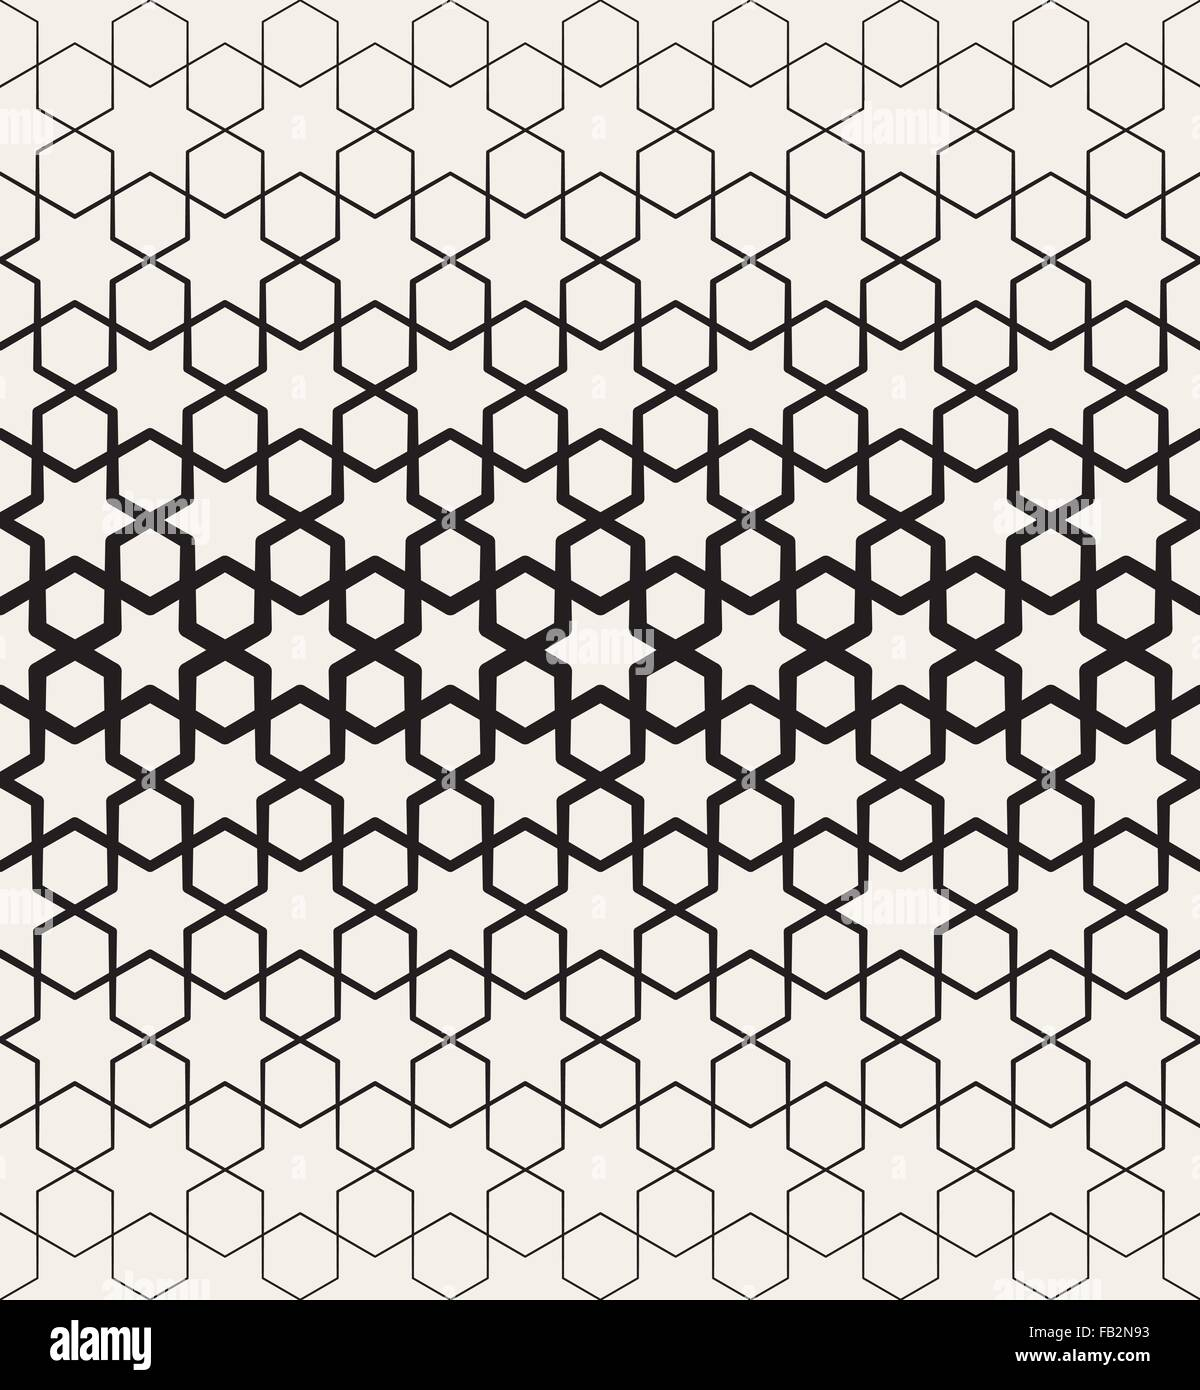 Vector Seamless Black And White Islamic Star Geometric ...